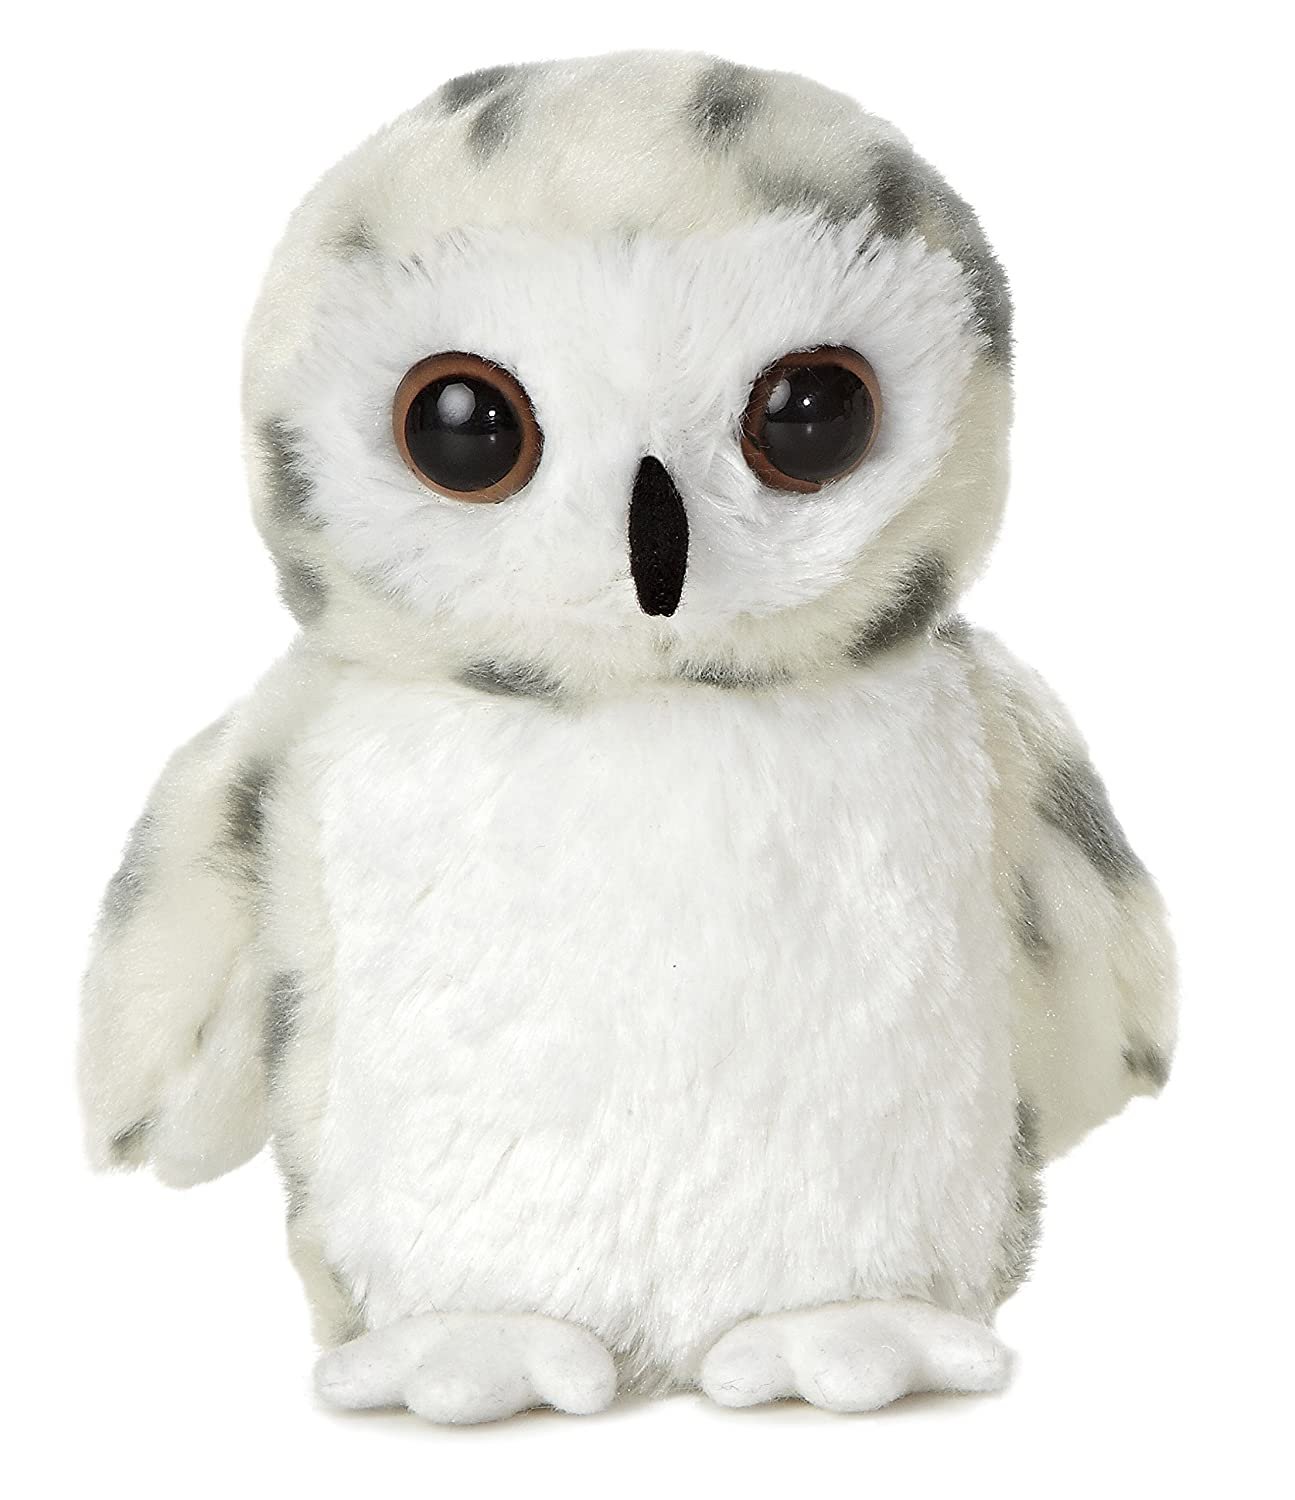 Aurora World Mini Flopsie Snowy Owl Plush Toy Aurora World Ltd 31345.0